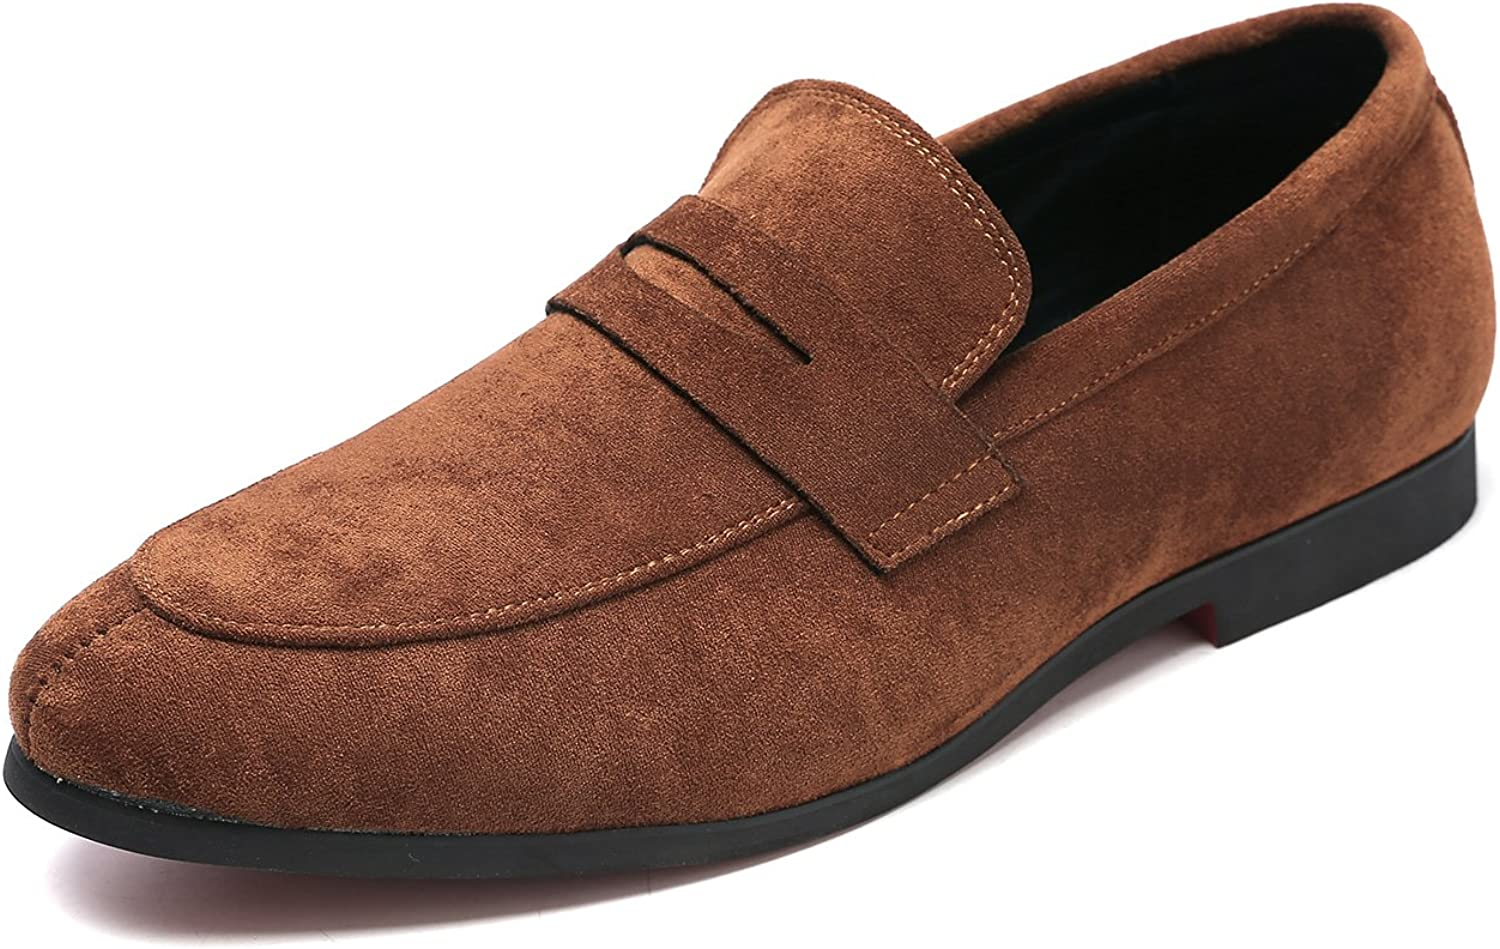 Andy J.K. Men's Tuxedo Slip-On Penny Loafer Classic Suede Leather Driving Dress shoes Round Toe Moccasin